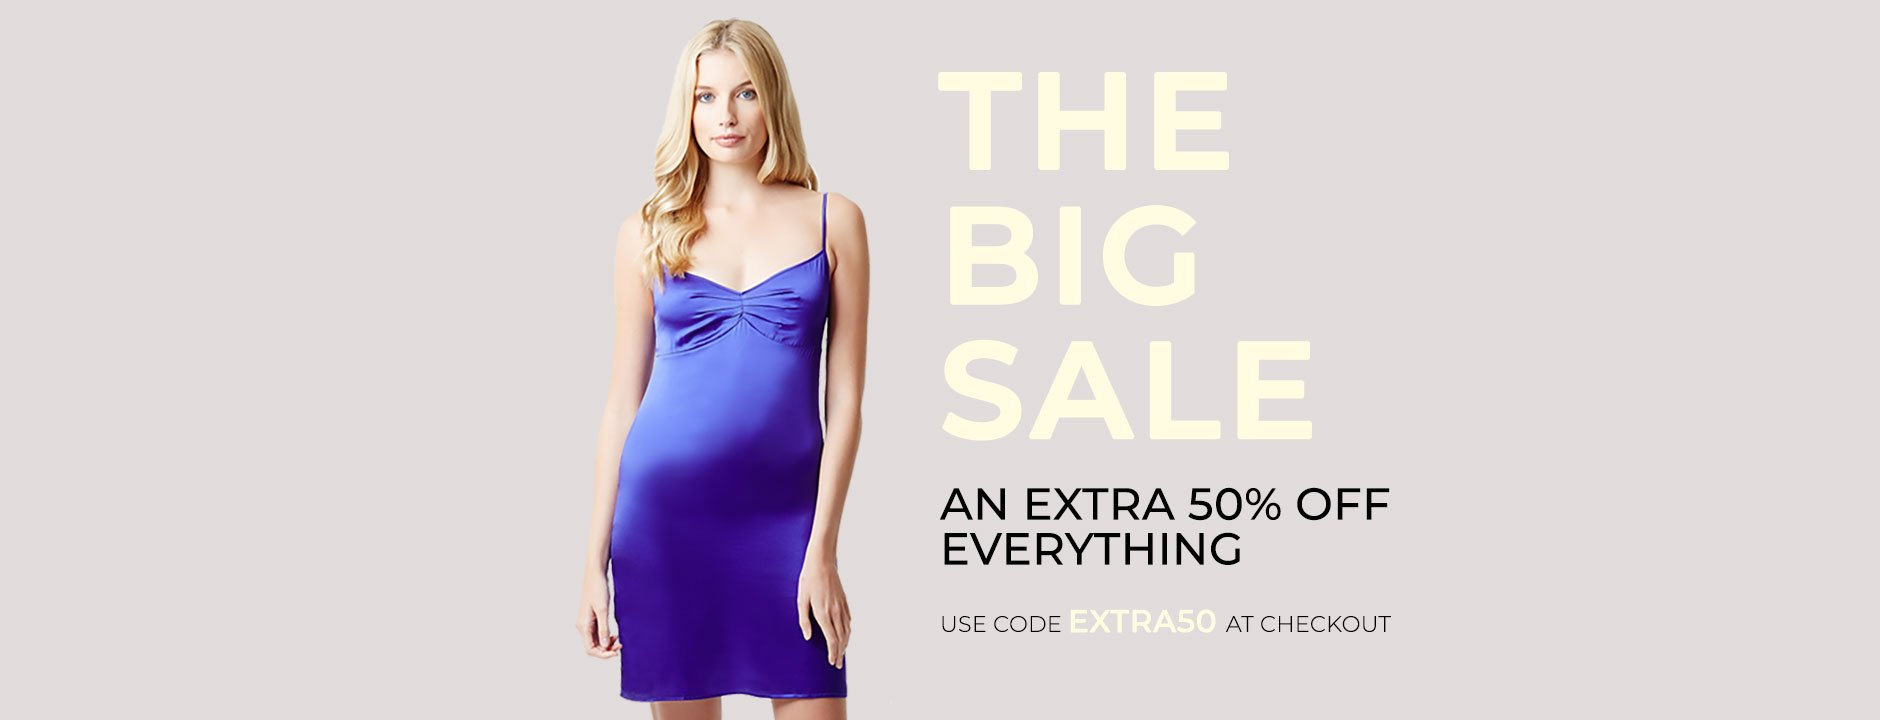 THE BIG SALE: An extra 30% off everything